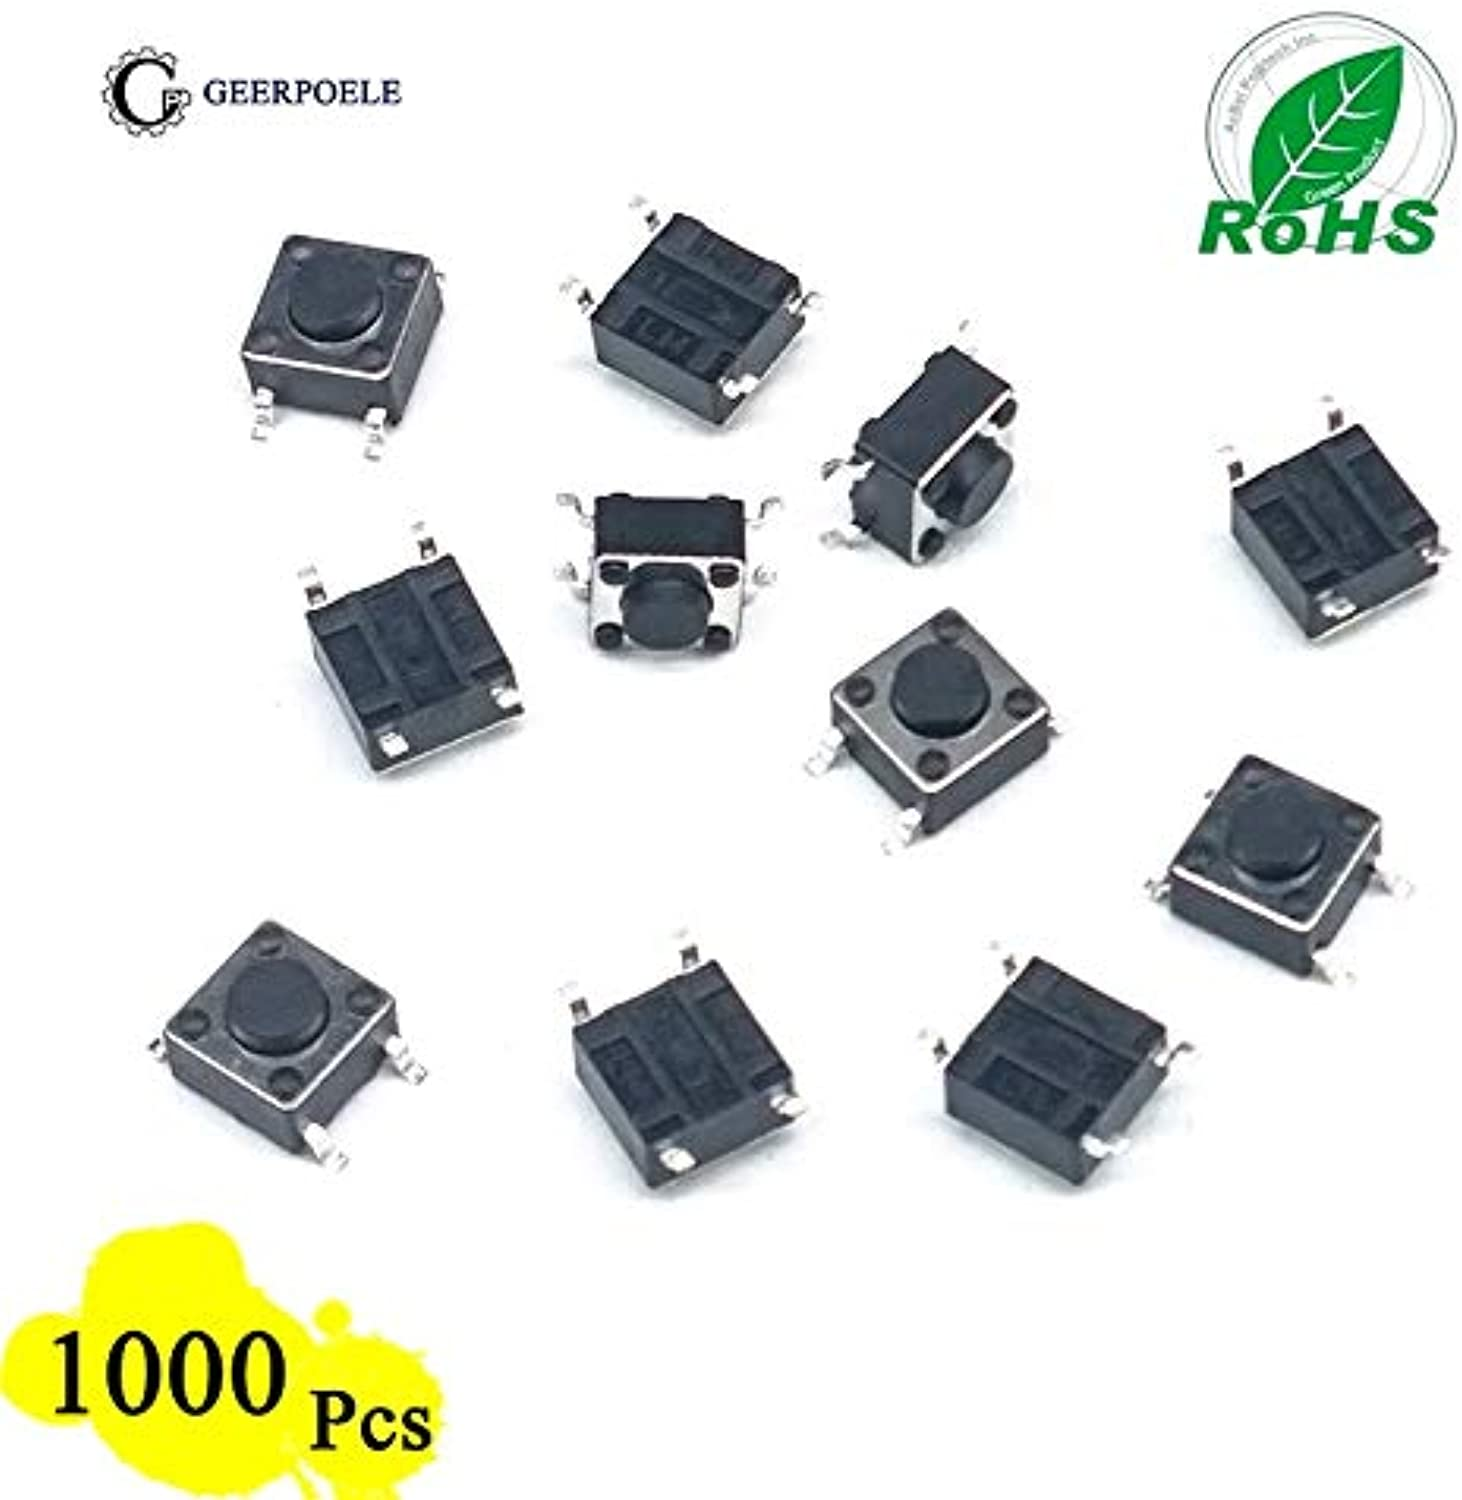 EP High Quality 1000 Pieces lot 6  6  4.5mm 4 PIN Tactile Tact Push Button Micro Switch Direct Plugin SelfReset Top Copper SMT